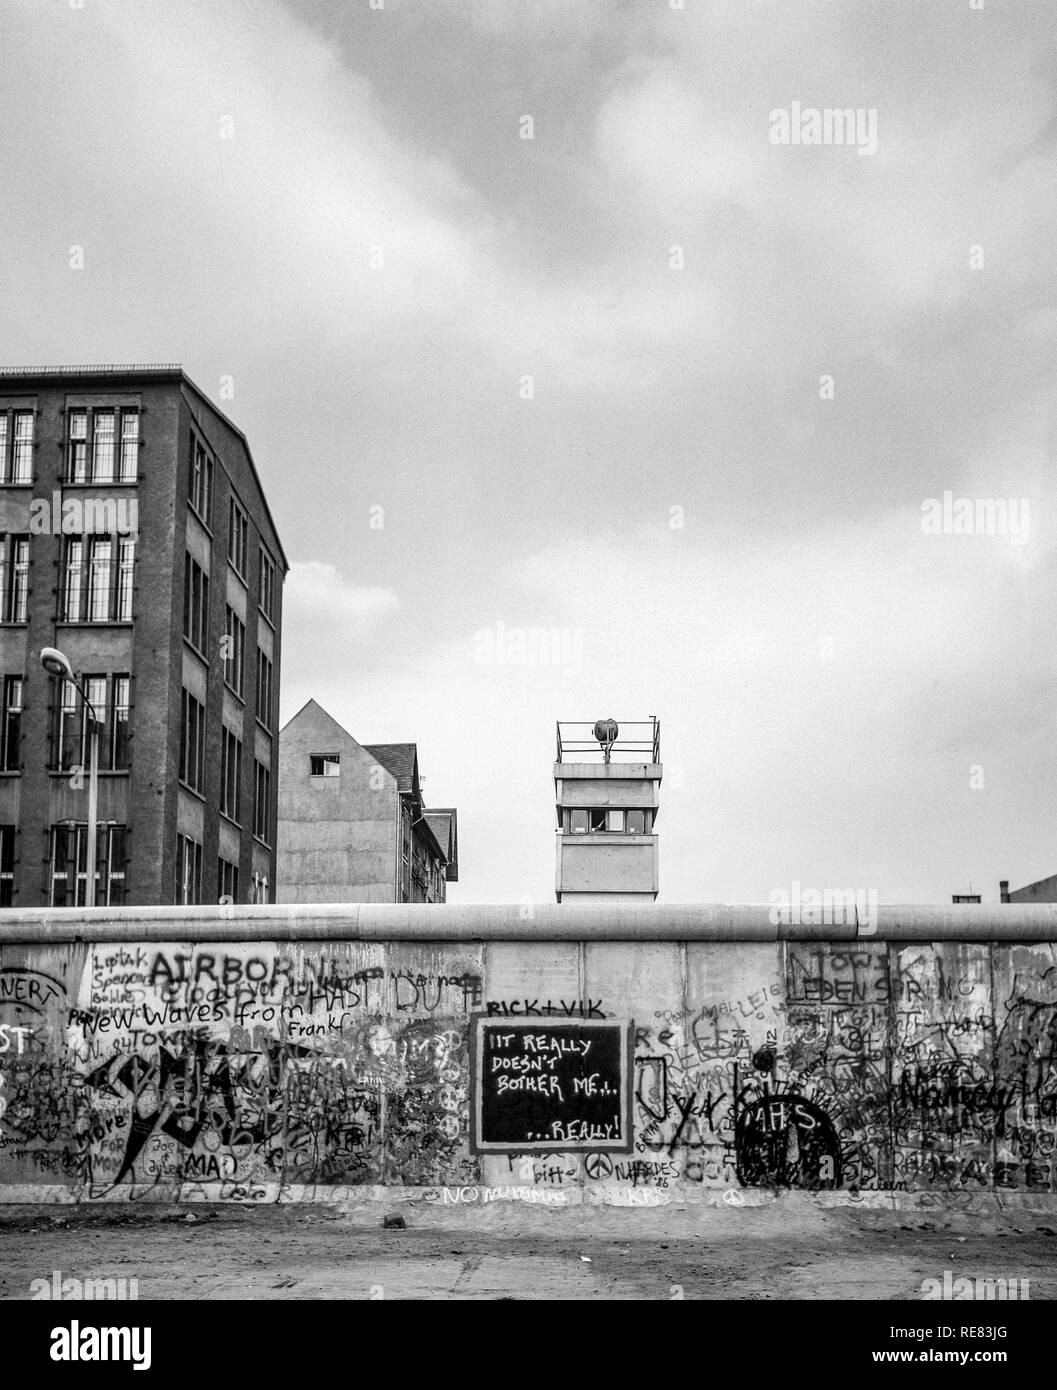 August 1986, graffitis on the Berlin Wall and East Berlin watchtower, Zimmerstrasse street, Kreuzberg, West Berlin side, Germany, Europe, - Stock Image